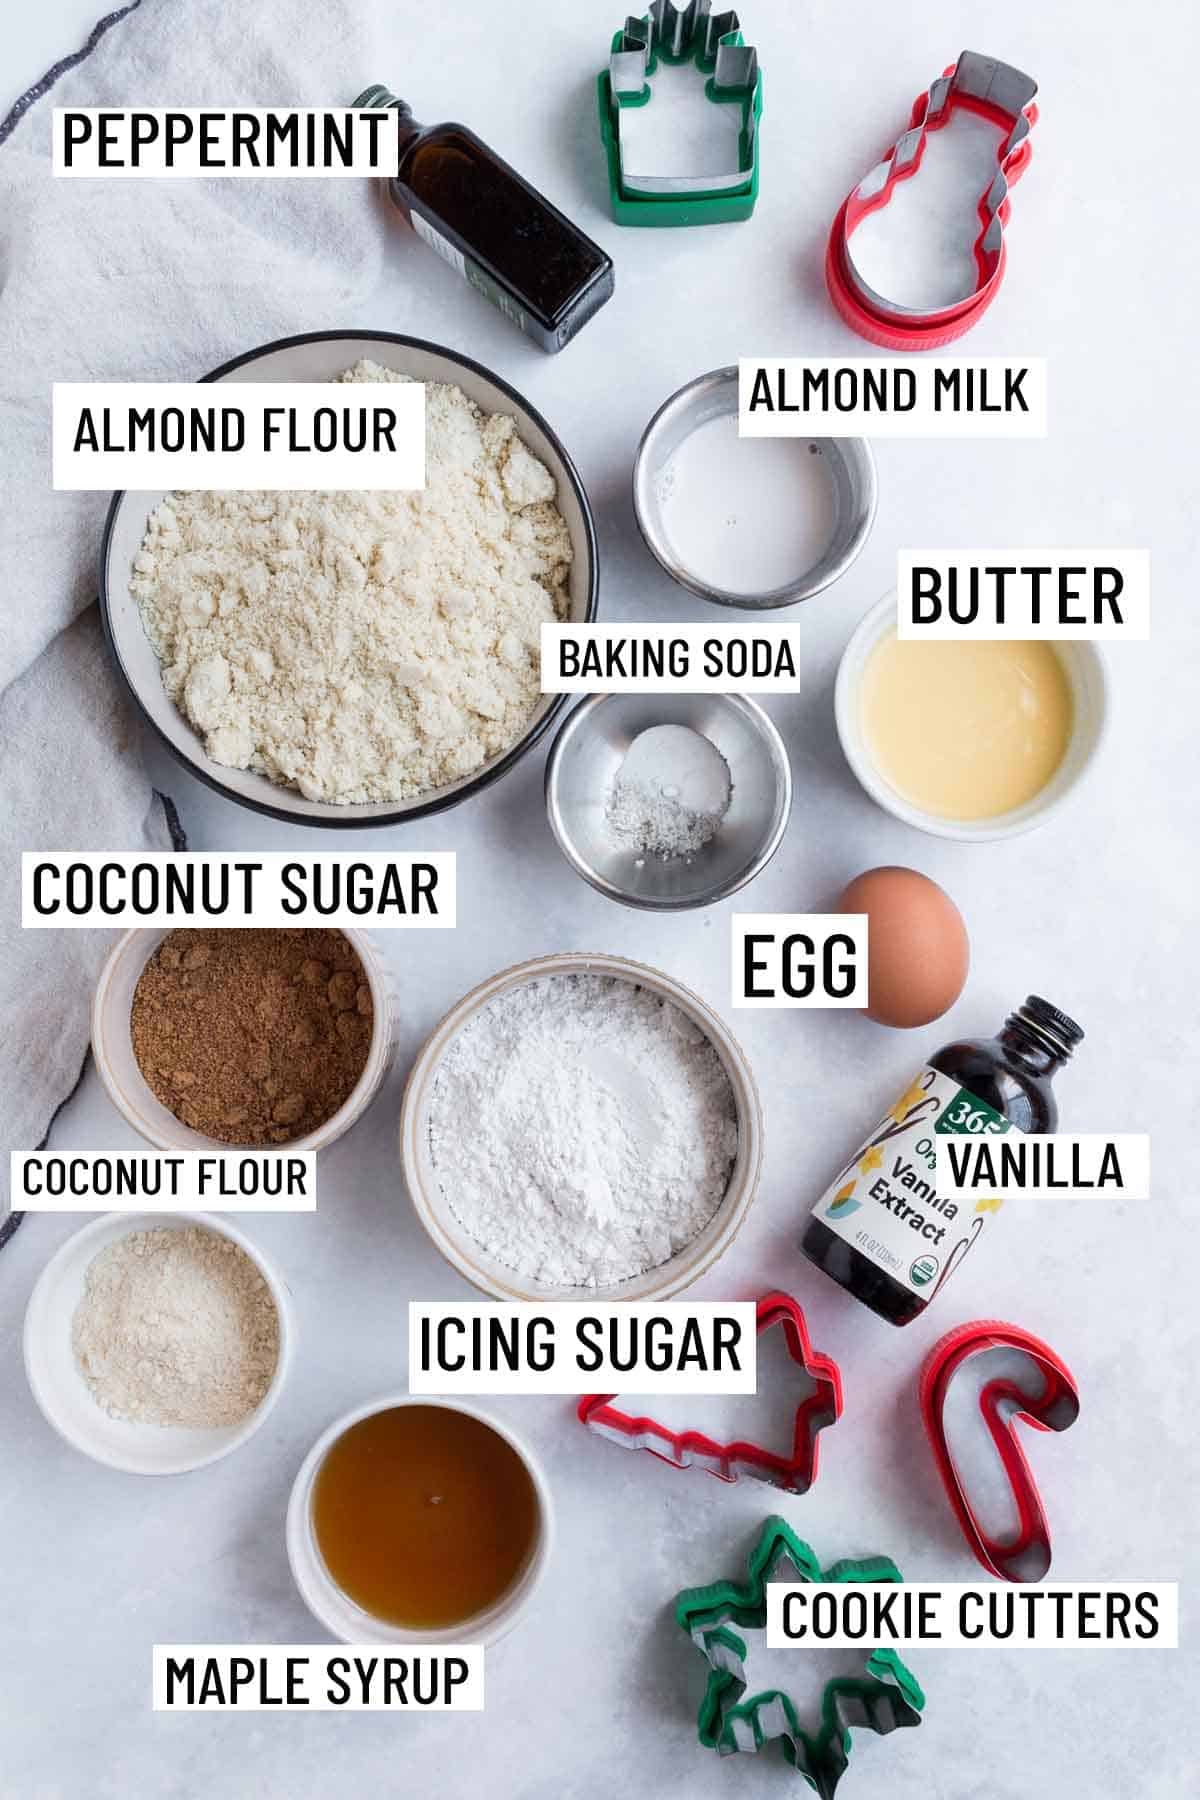 Birds eye view image of portioned ingredients for Christmas recipe including almond flour, vanilla and peppermint extract, butter, baking soda, almond milk, egg, coconut sugar, icing sugar, coconut flour, maple syrup, and cookie cutters.